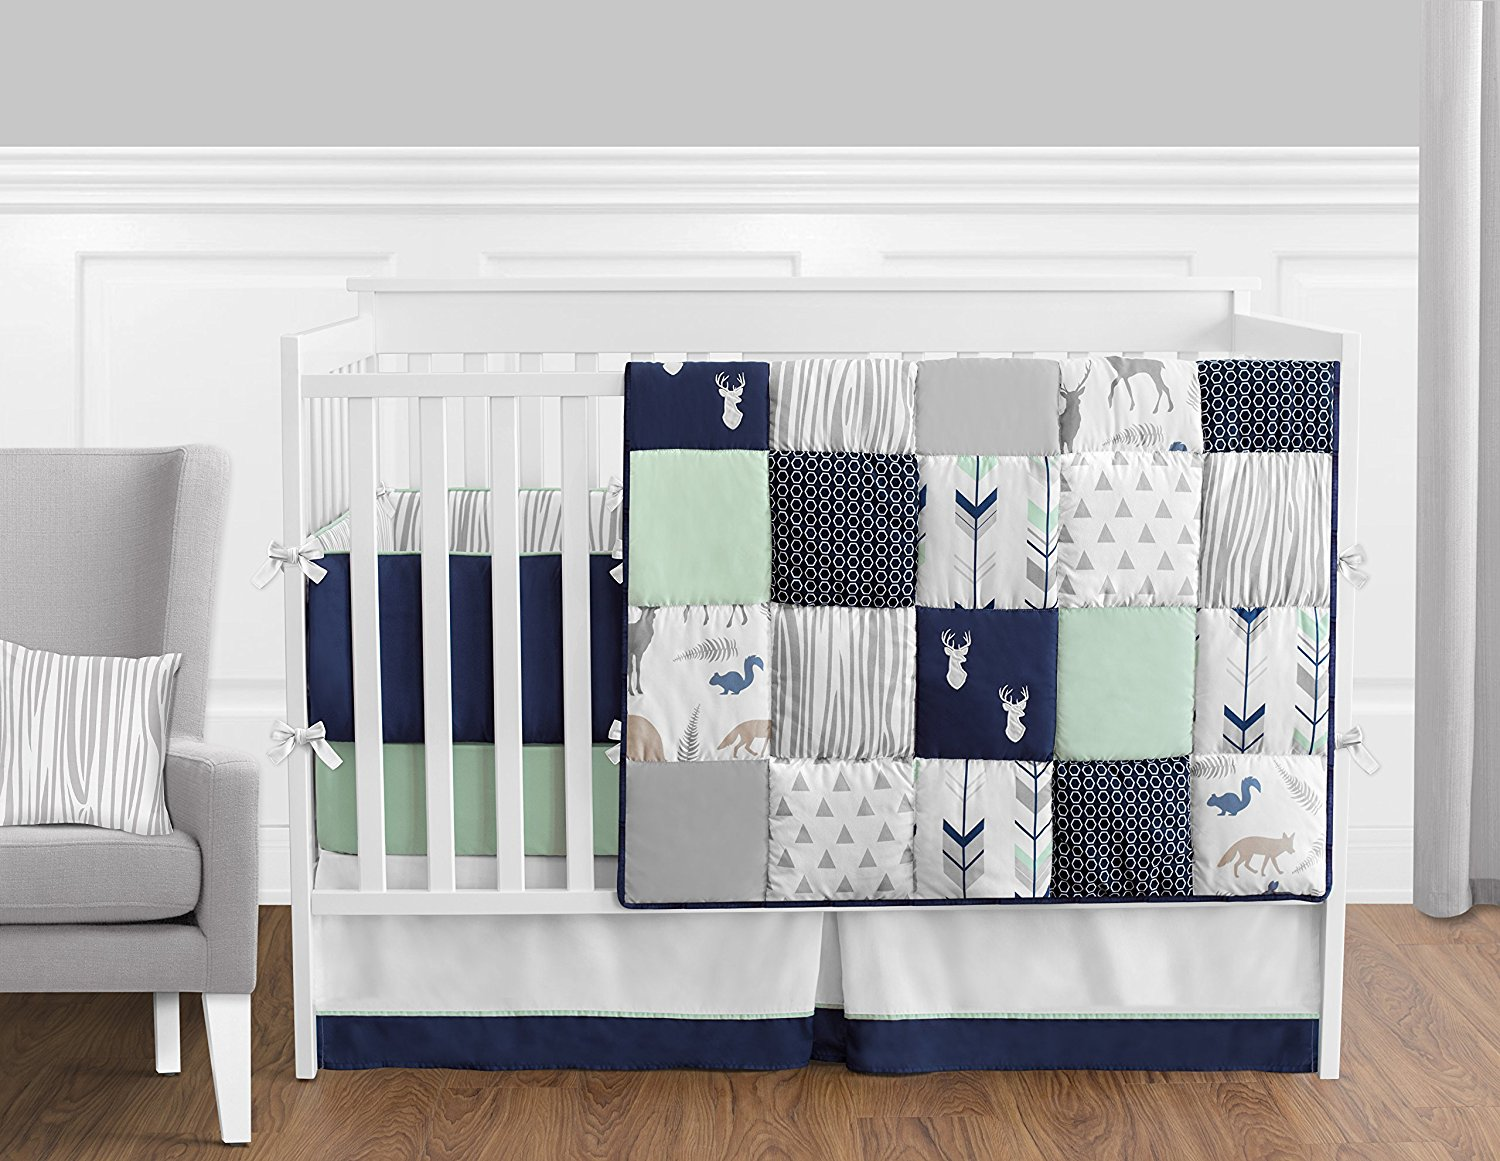 Image of: Crib Bedding Sets for Girls Ideas